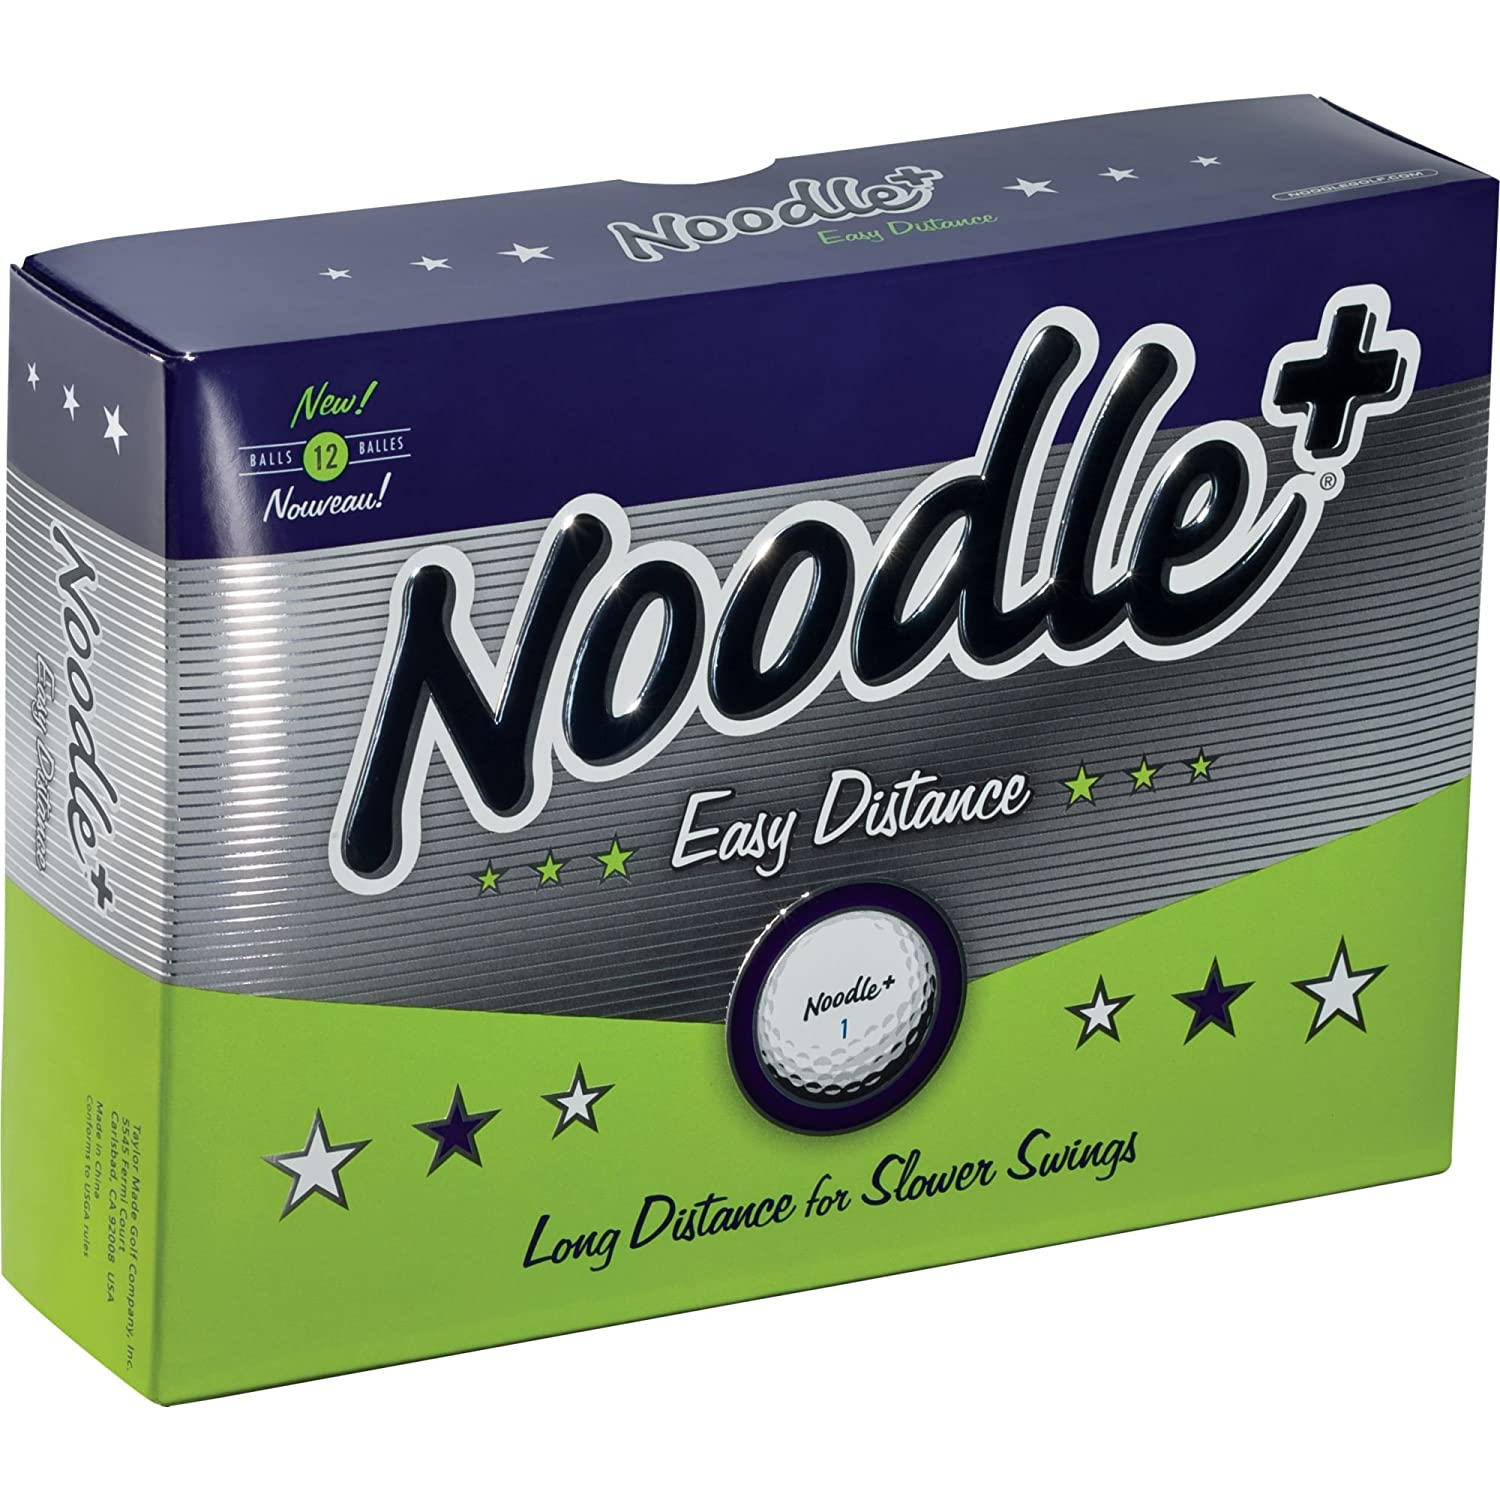 Noodle Plus Easy Distance Balls